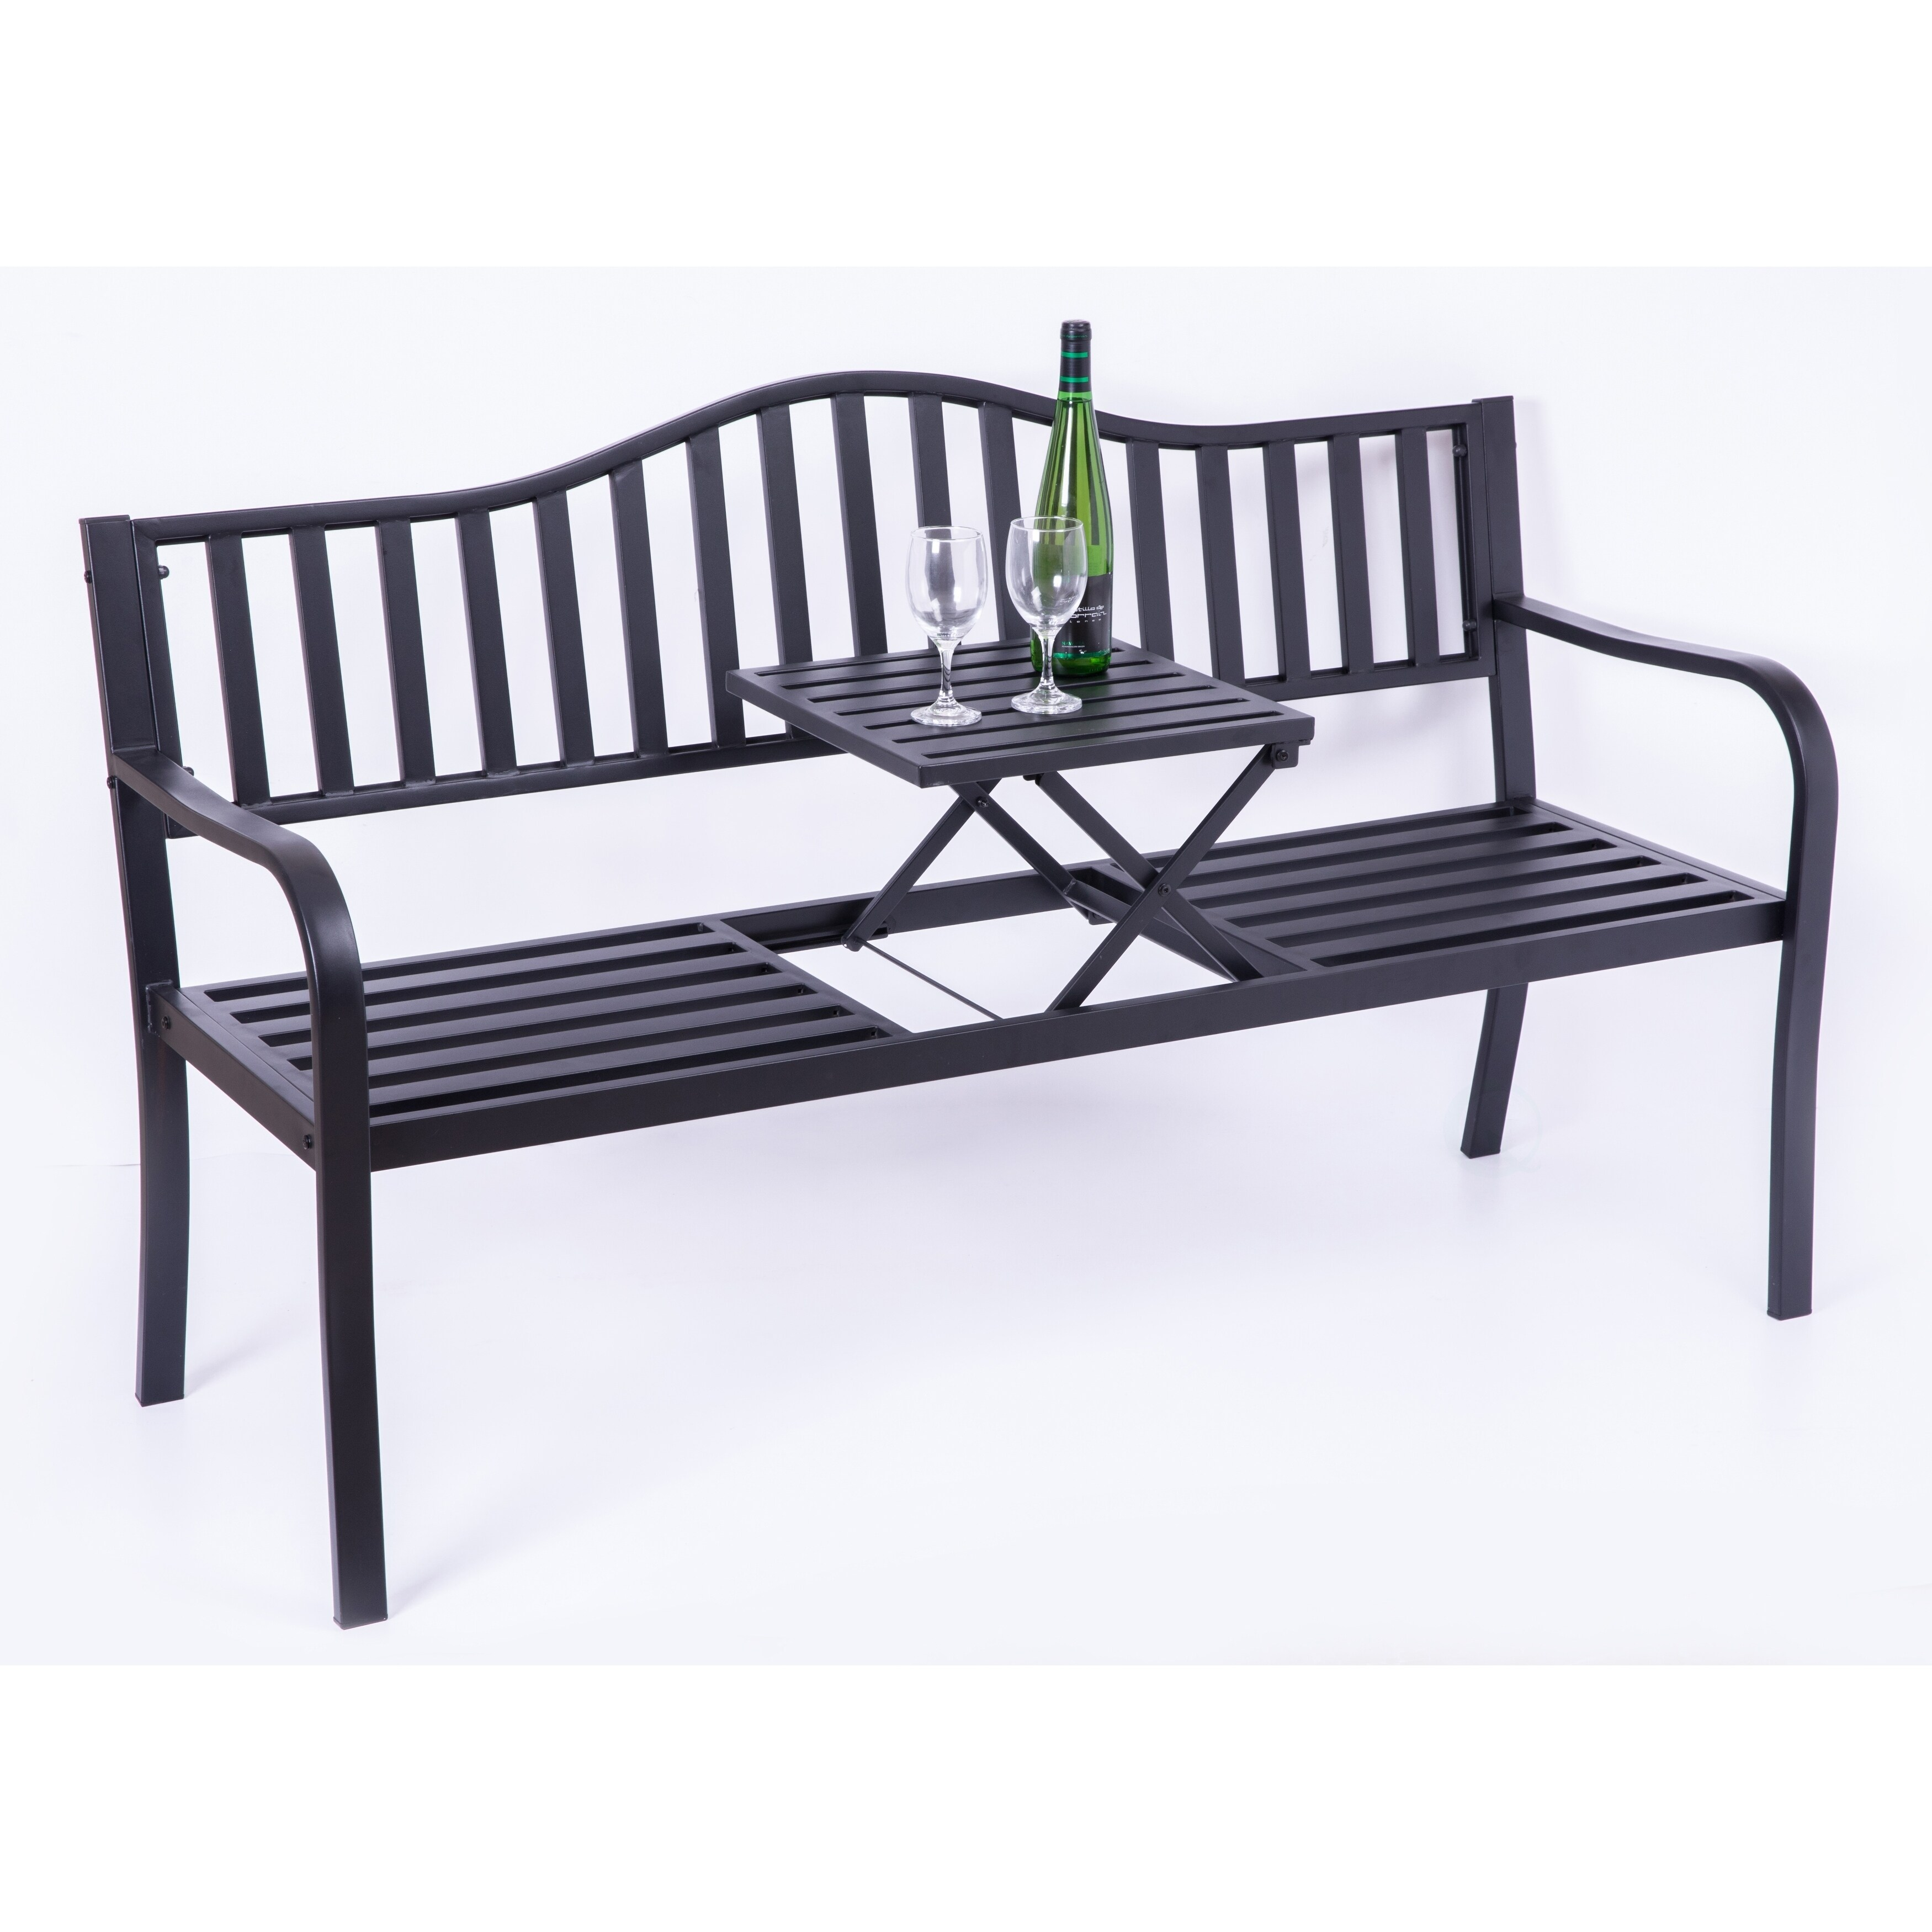 Shop Black Friday Deals On Powder Coated Black Steel Patio Garden Park Bench With Middle Table Overstock 27479552